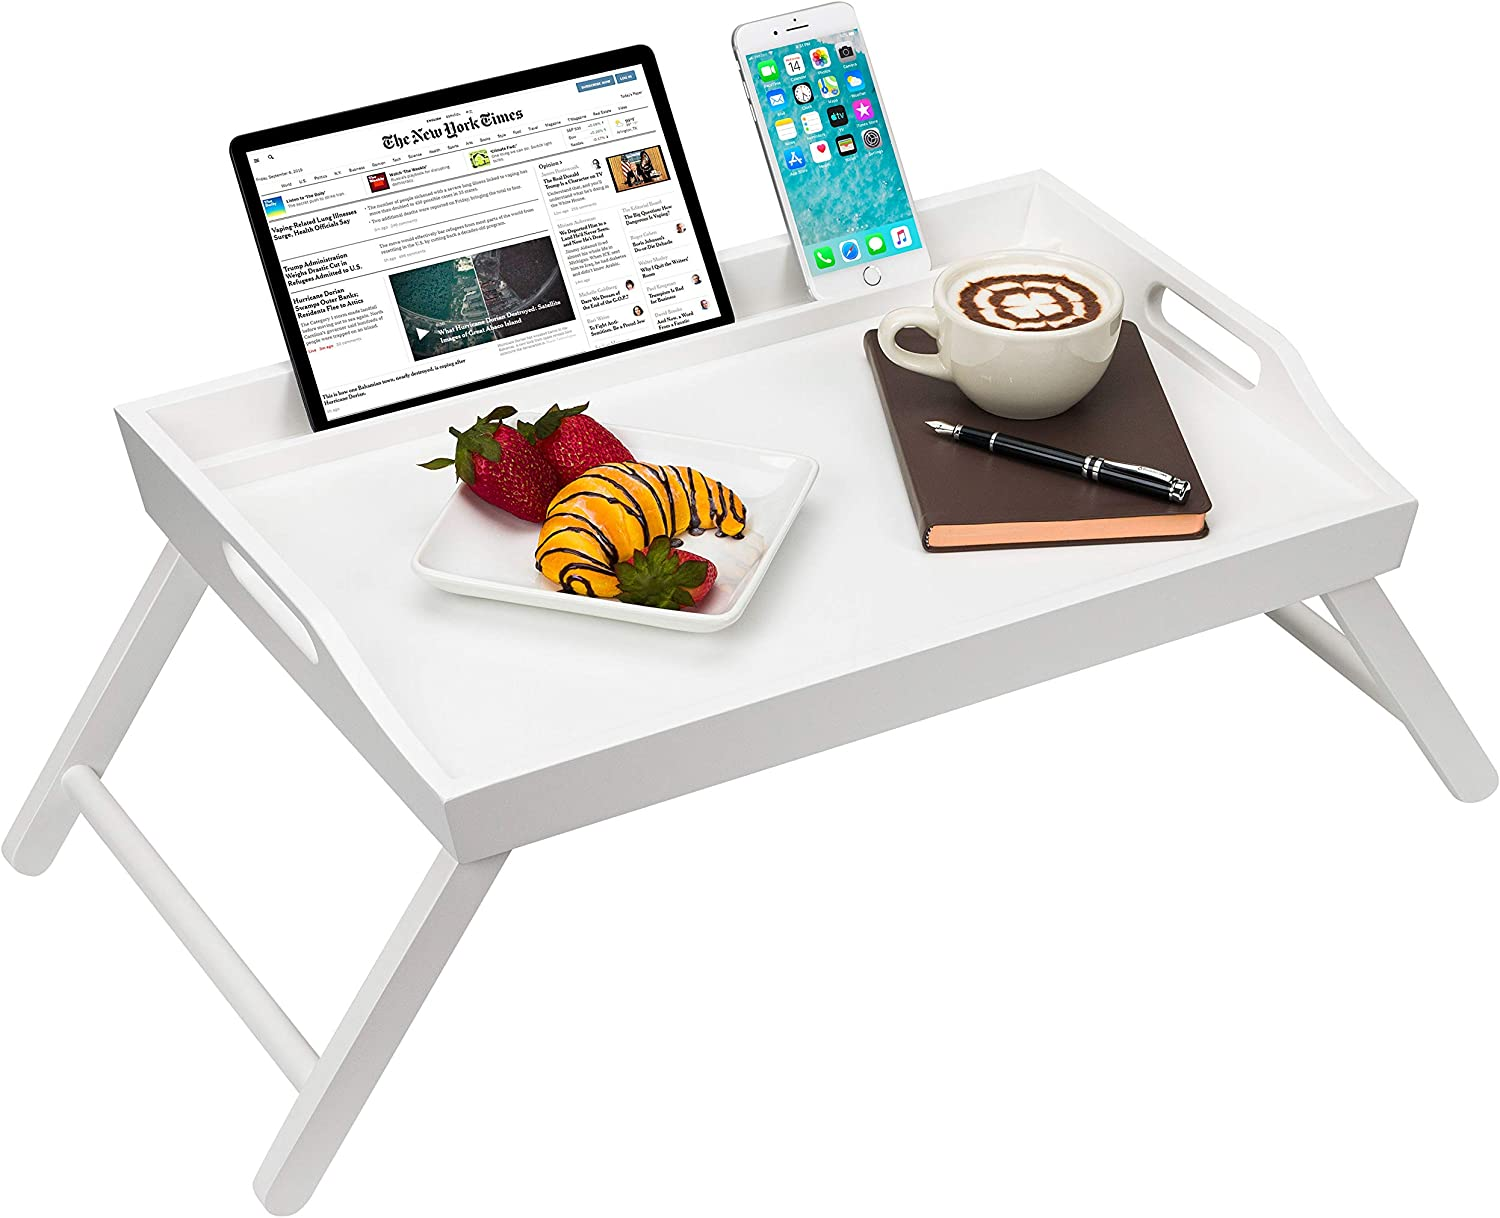 LapGear Rossie Home Media Bed Tray with Phone Holder - Fits up to 17.3 Inch Laptops and Most Tablets - Soft White - Style No. 78104